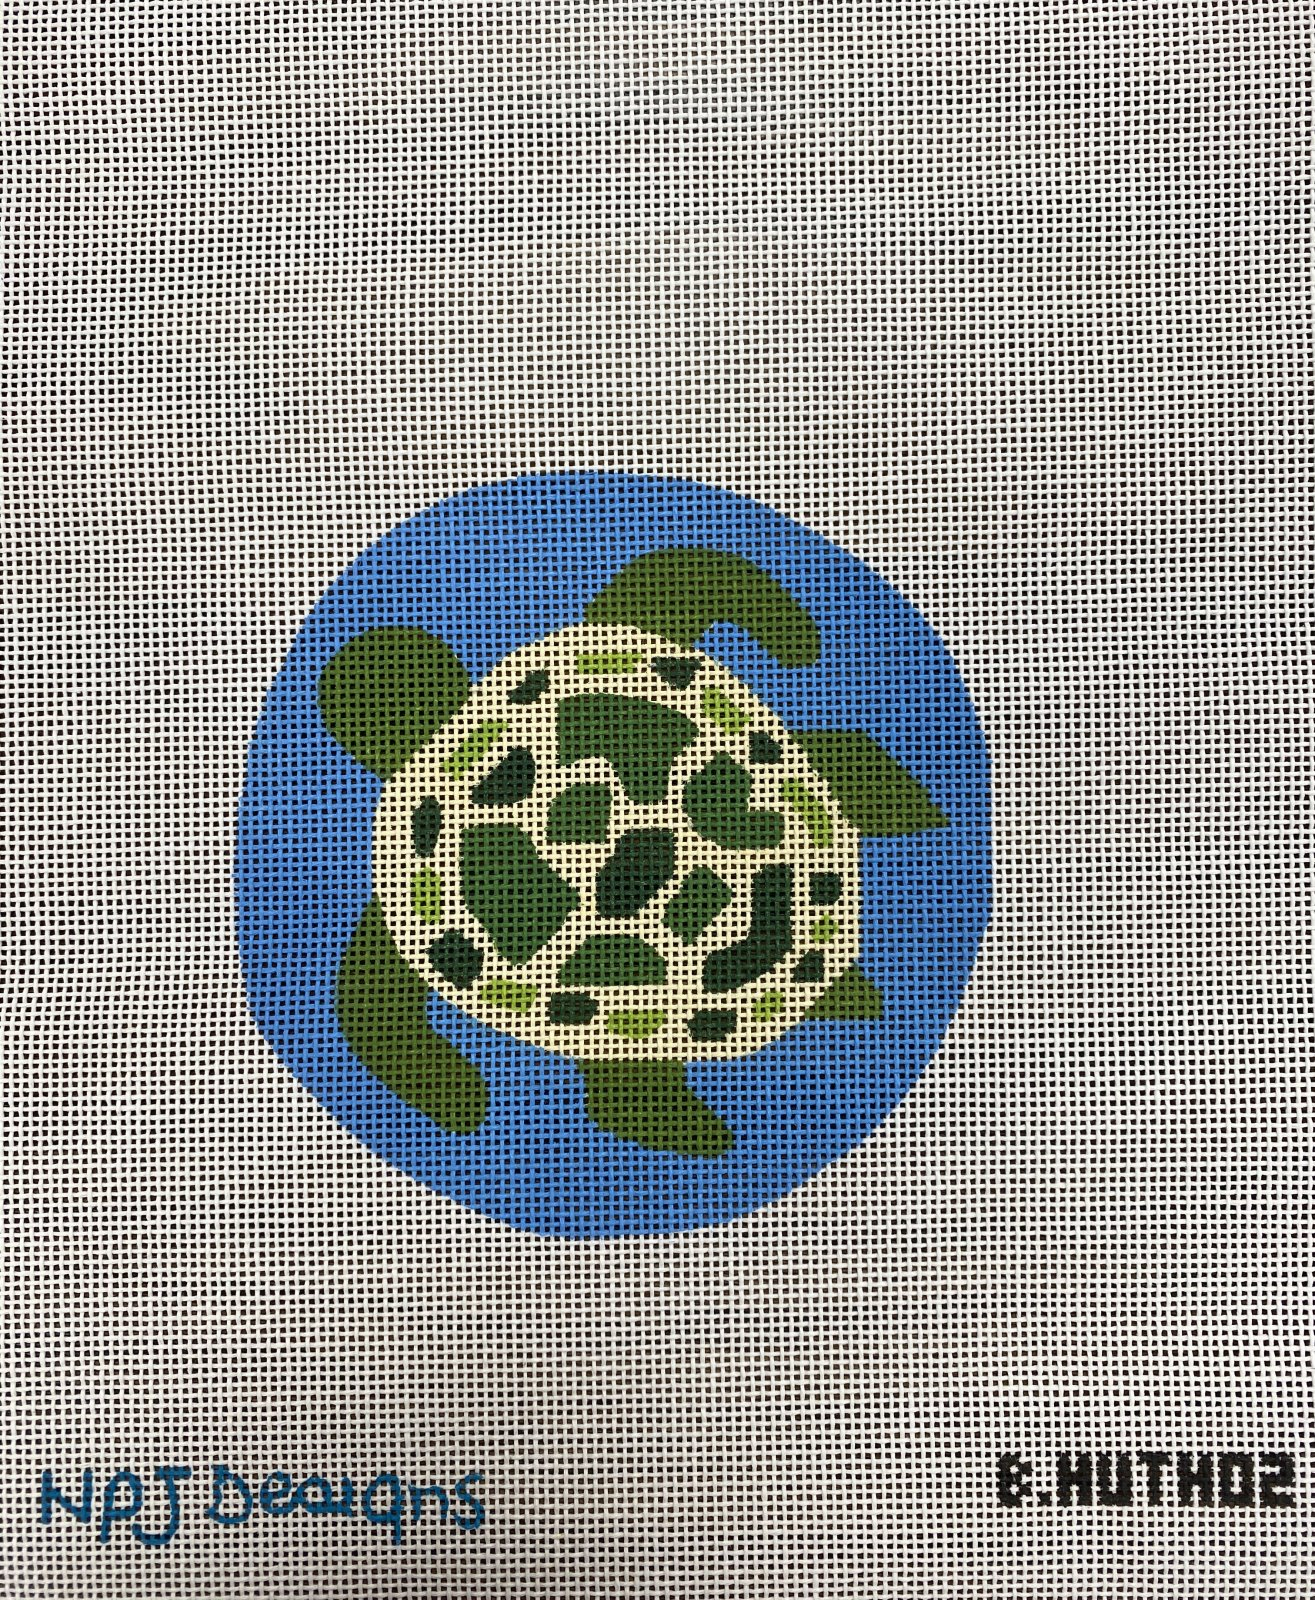 SEATURTLE ORNAMENT B.HUTH 02 -